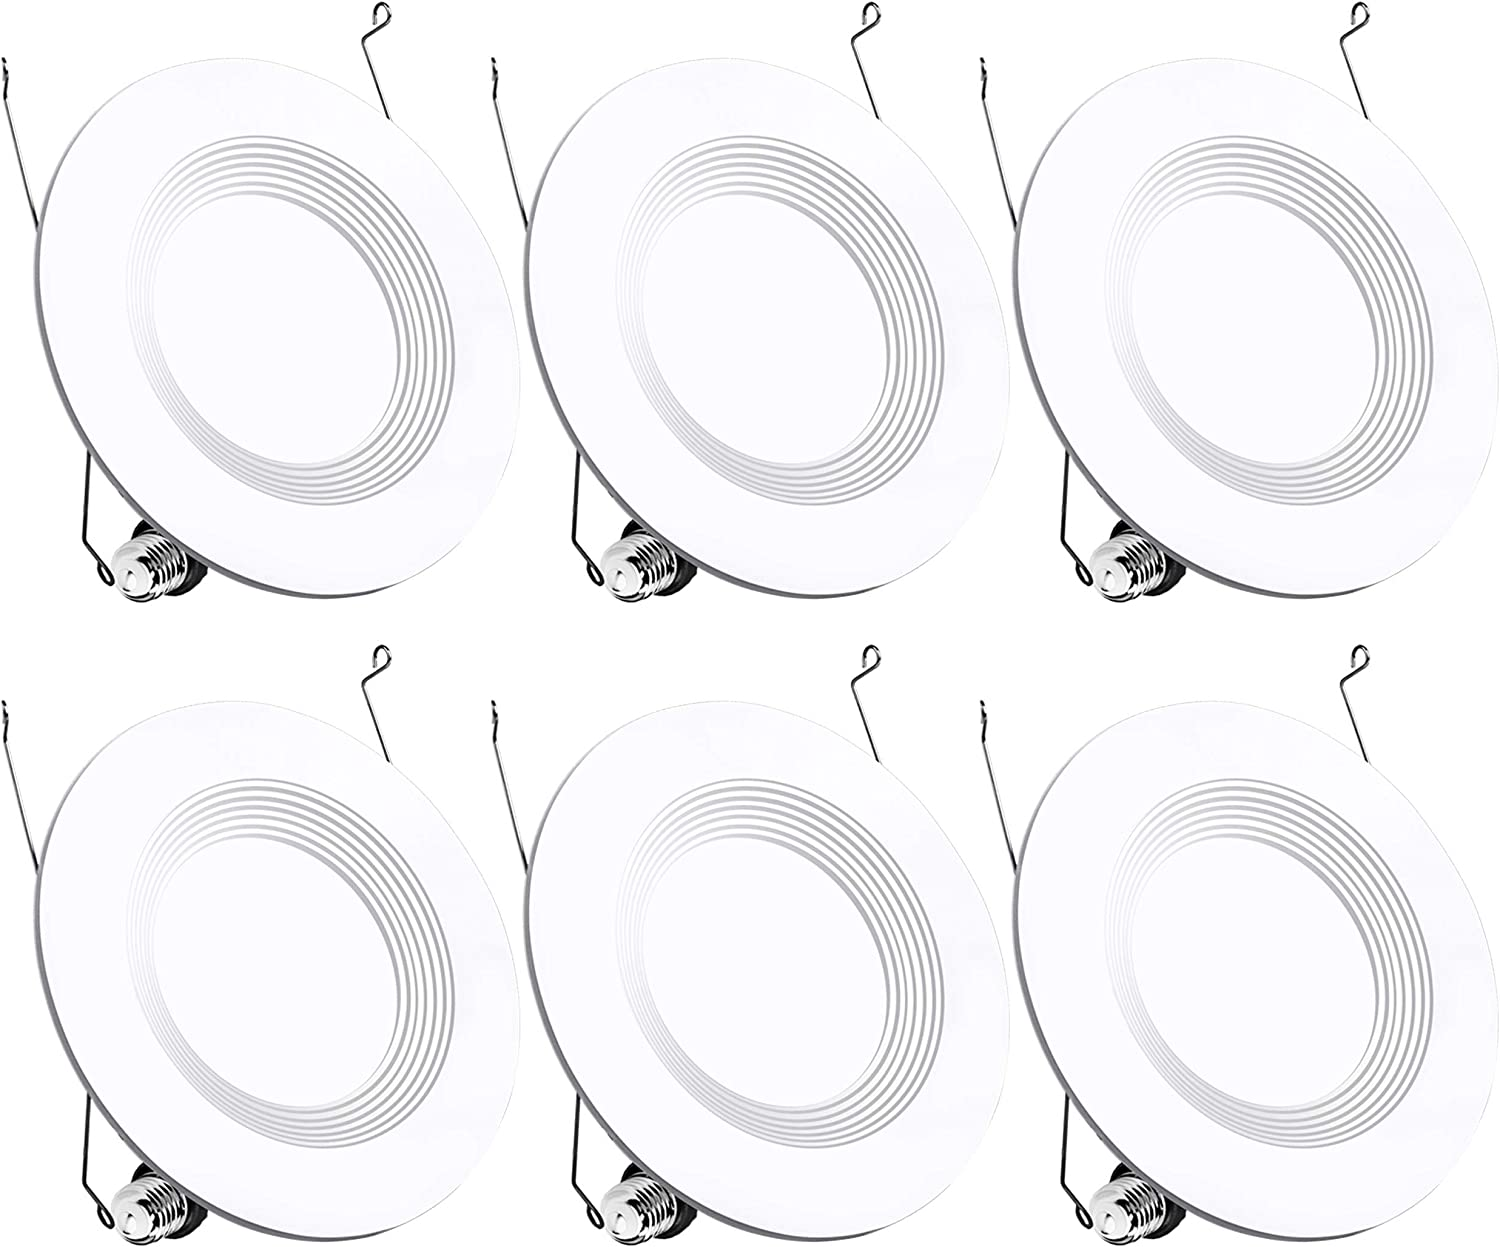 5 6 Inch Led Recessed Lights Downlight (5 Inch Compatible), 13W (120W Equivalent) Recessed Lighting, 4000K (Cool White) Dimmable Led Can Lights UL and Energy Star Certified 6 Pack